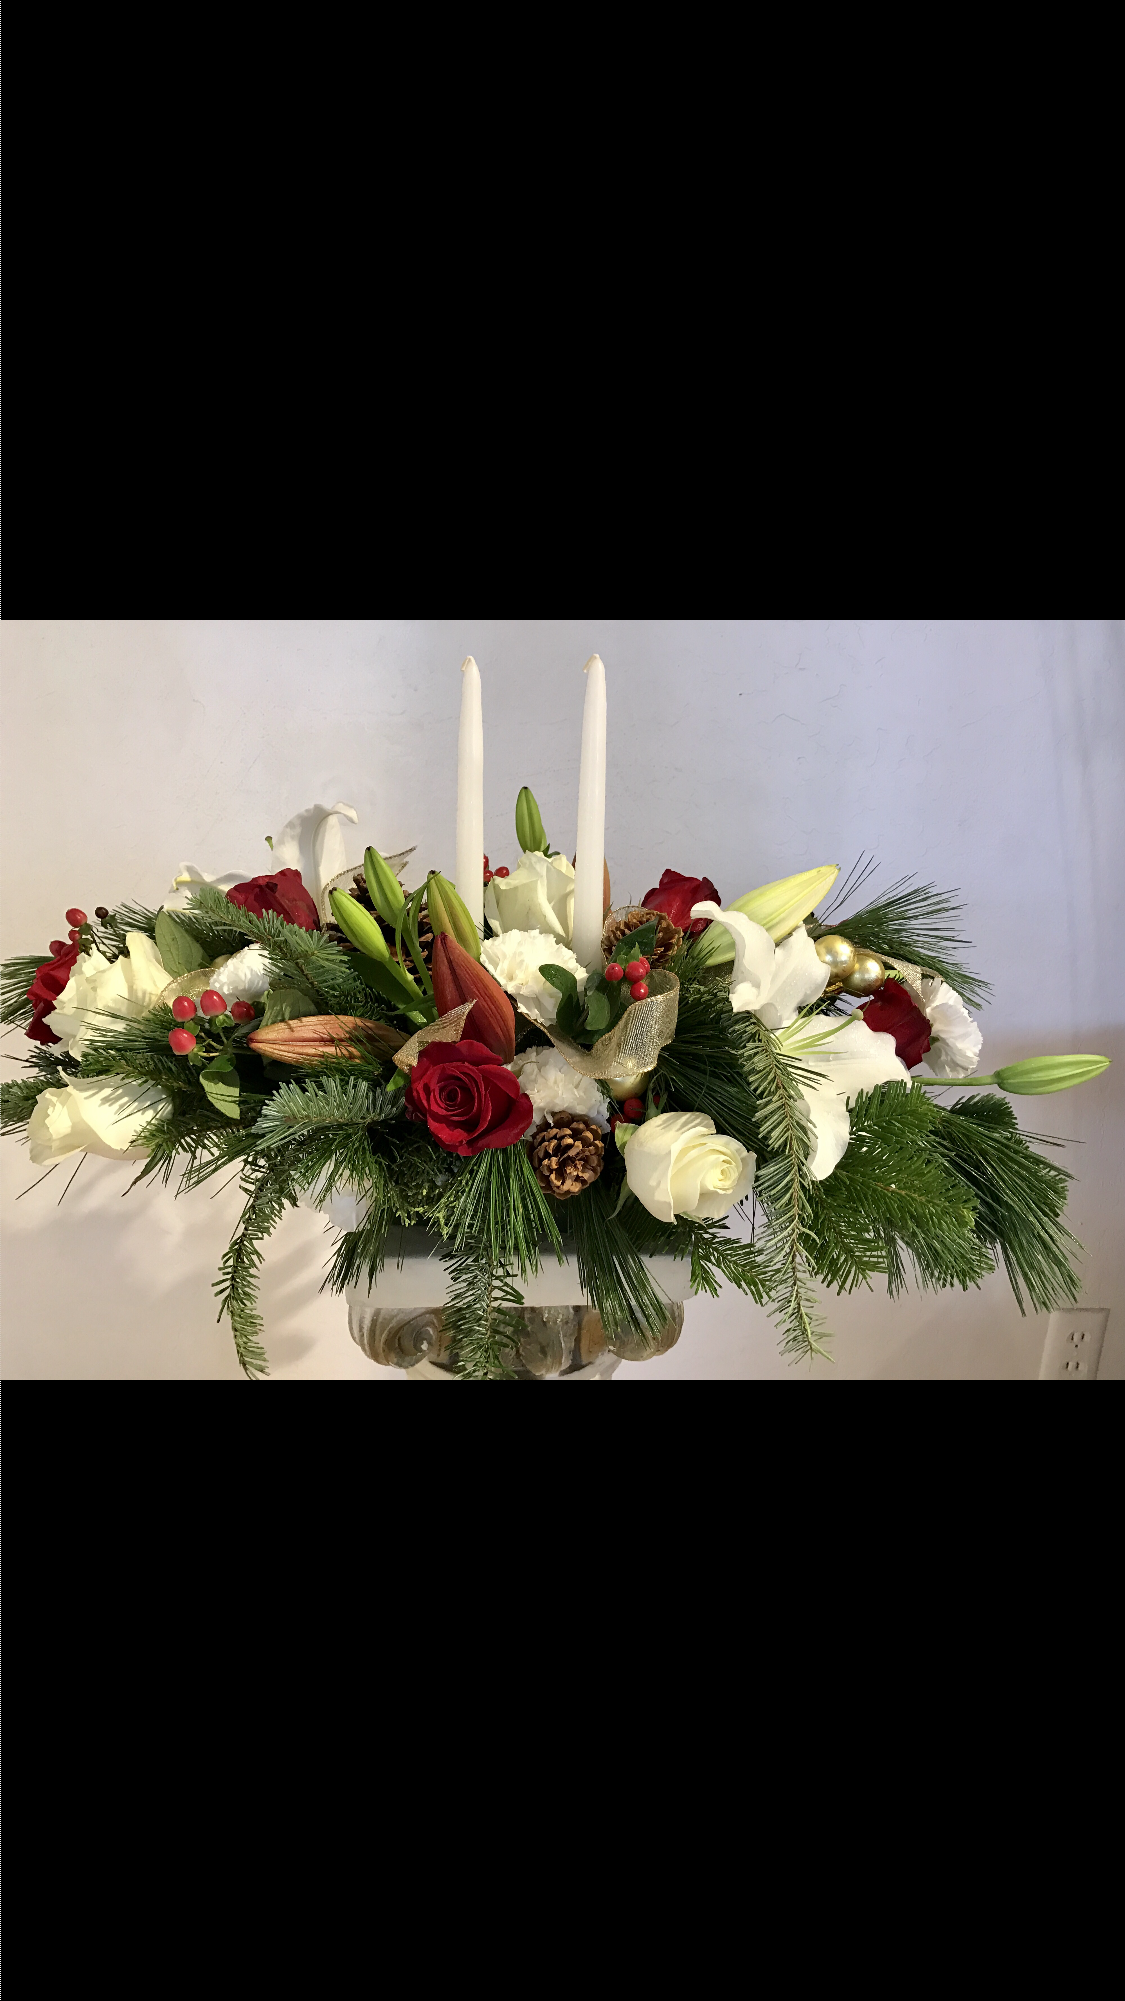 Pin by white house florists santa barbara on white house florist white houses florists wreaths garlands white homes door wreaths flower shops deco mesh wreaths floral wreath mightylinksfo